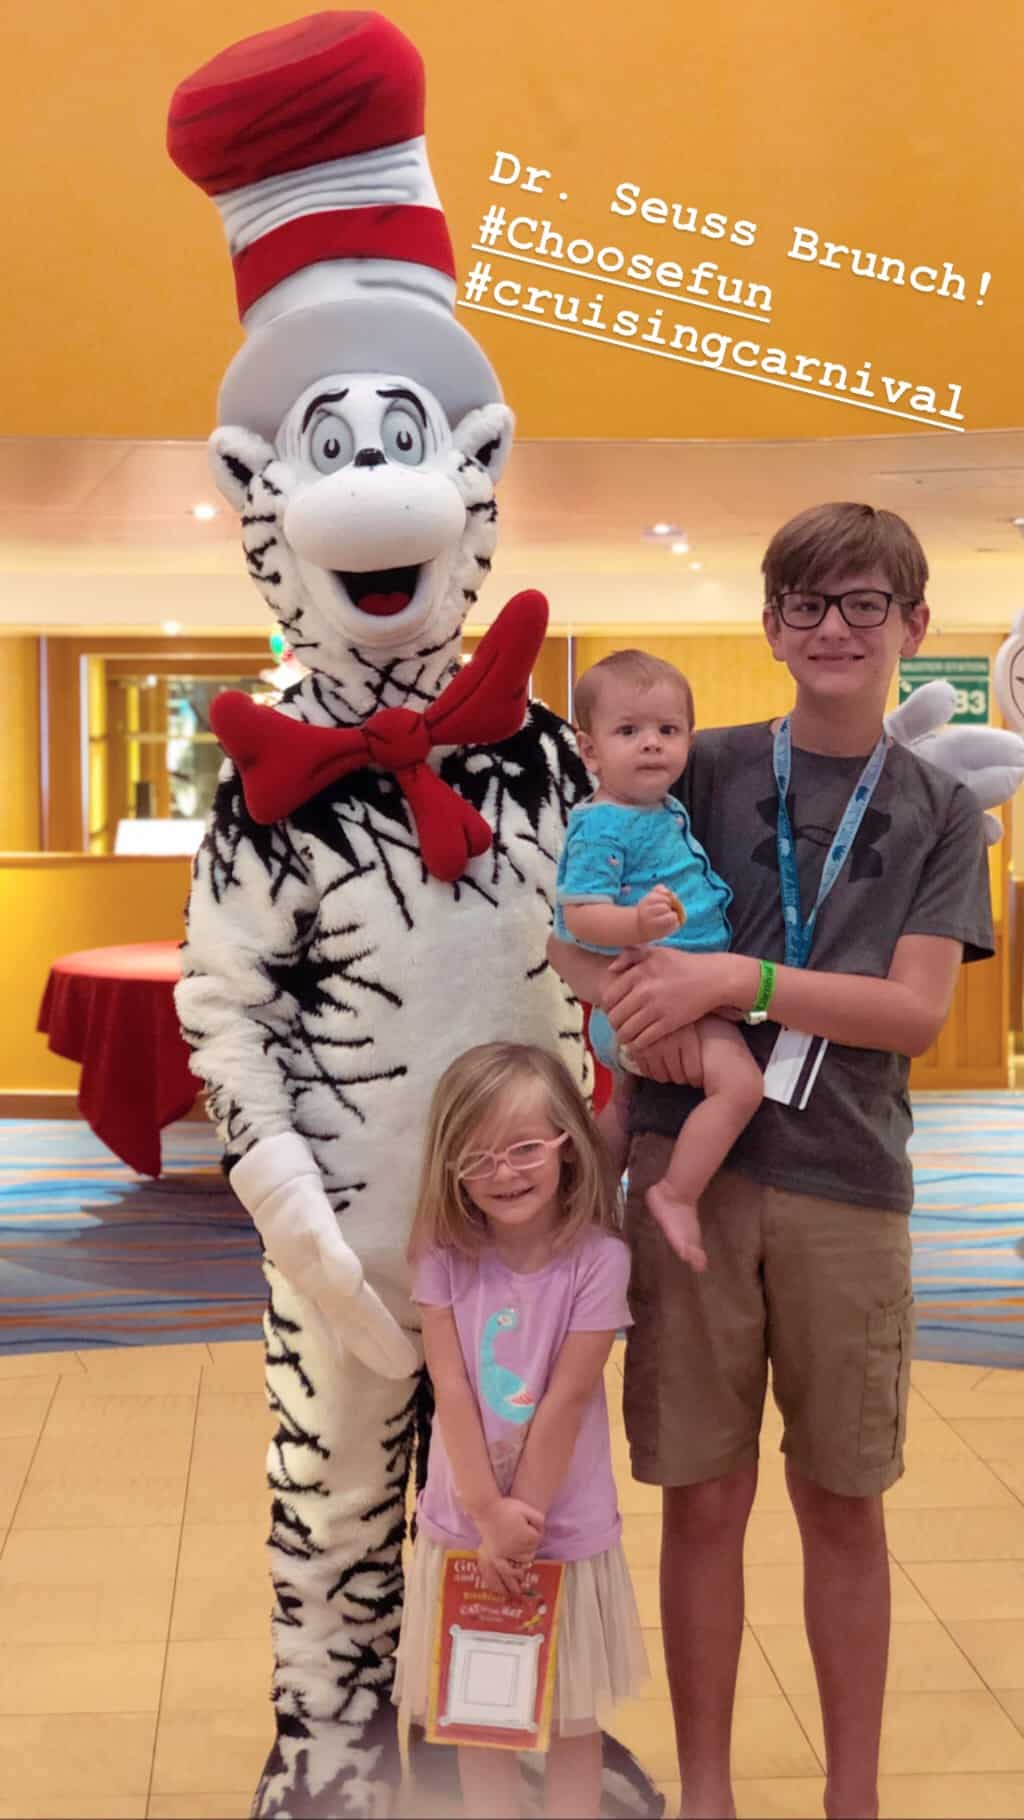 picture with the cat in the hat